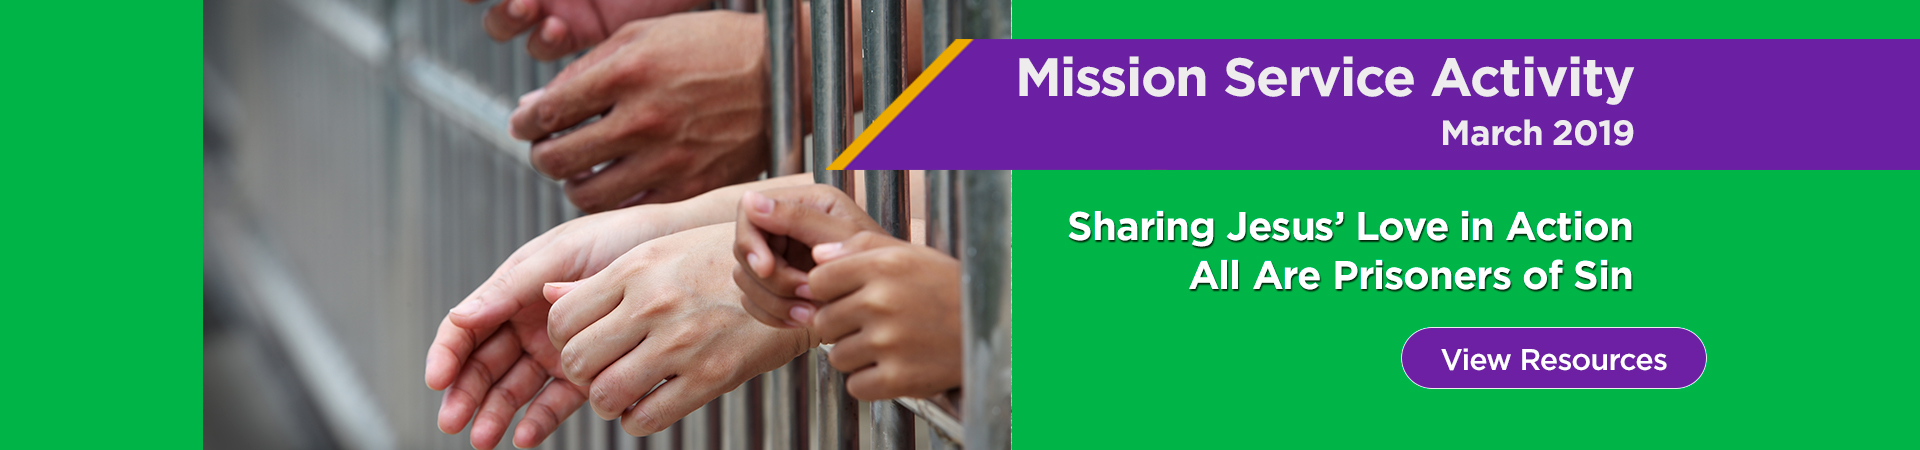 March Mission Service Activity: All Are Prisoners of Sin